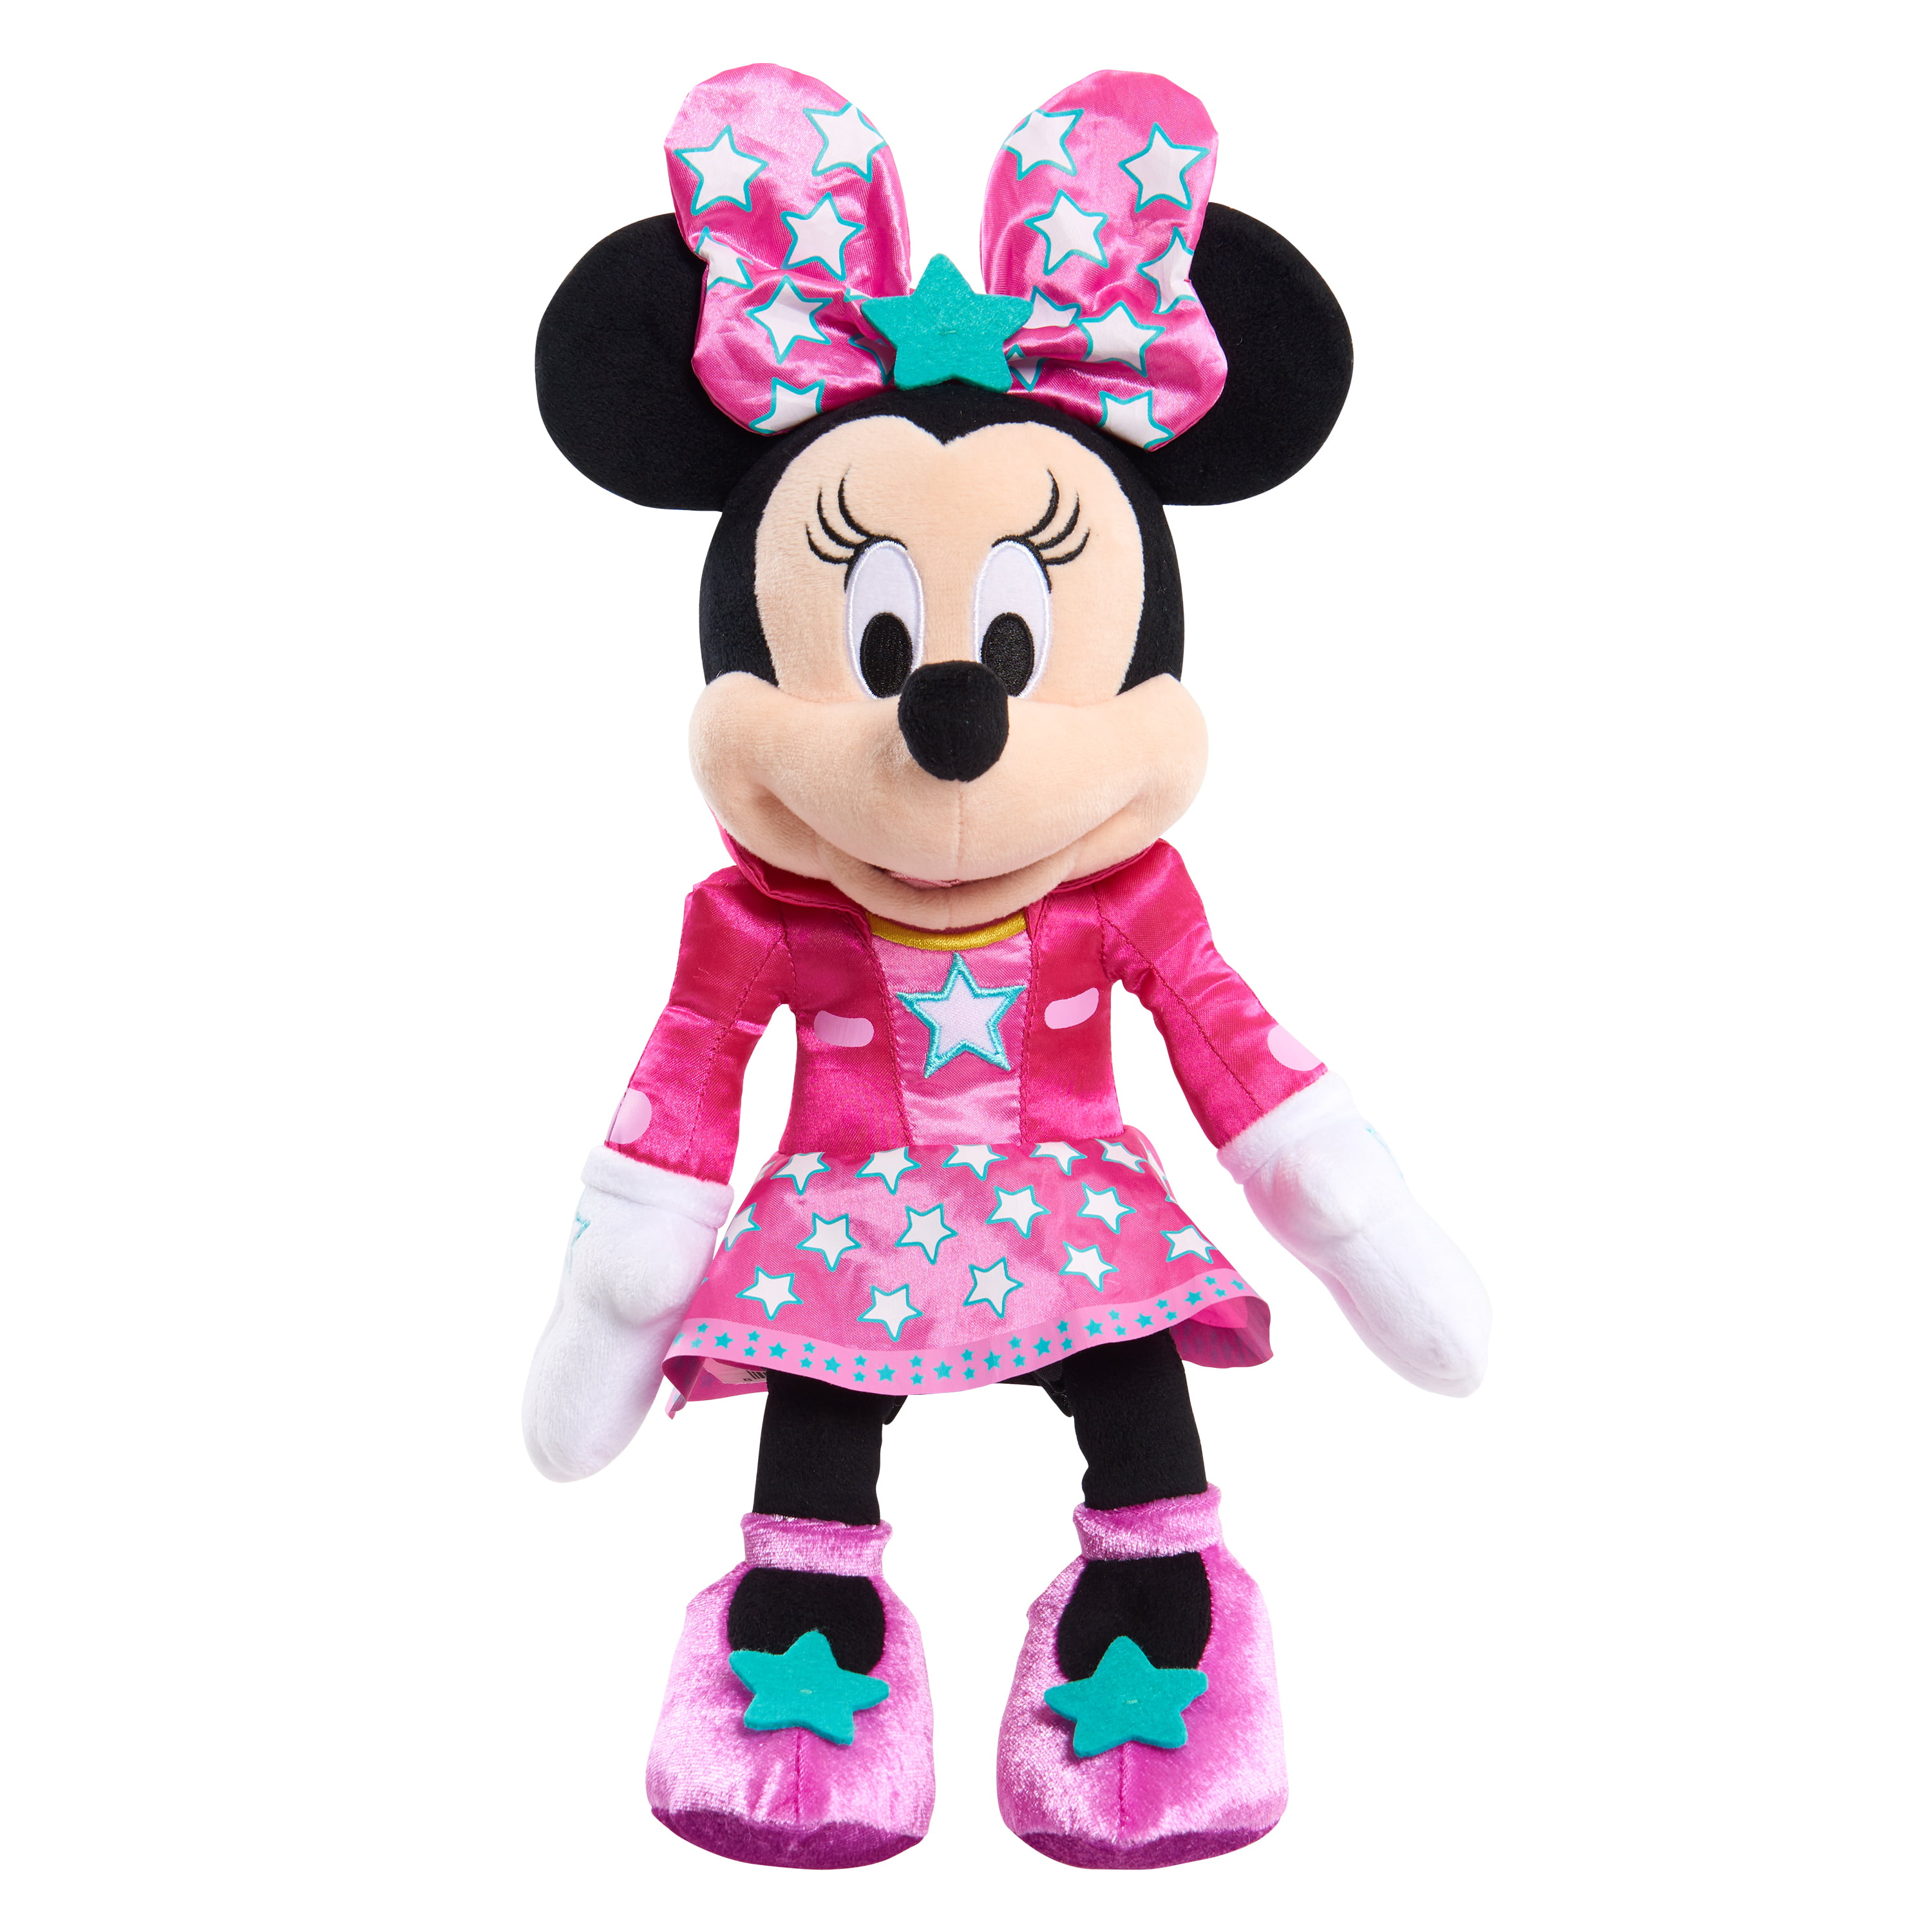 Minnie's Happy Helpers Lights & Sounds Plush – Pop Star